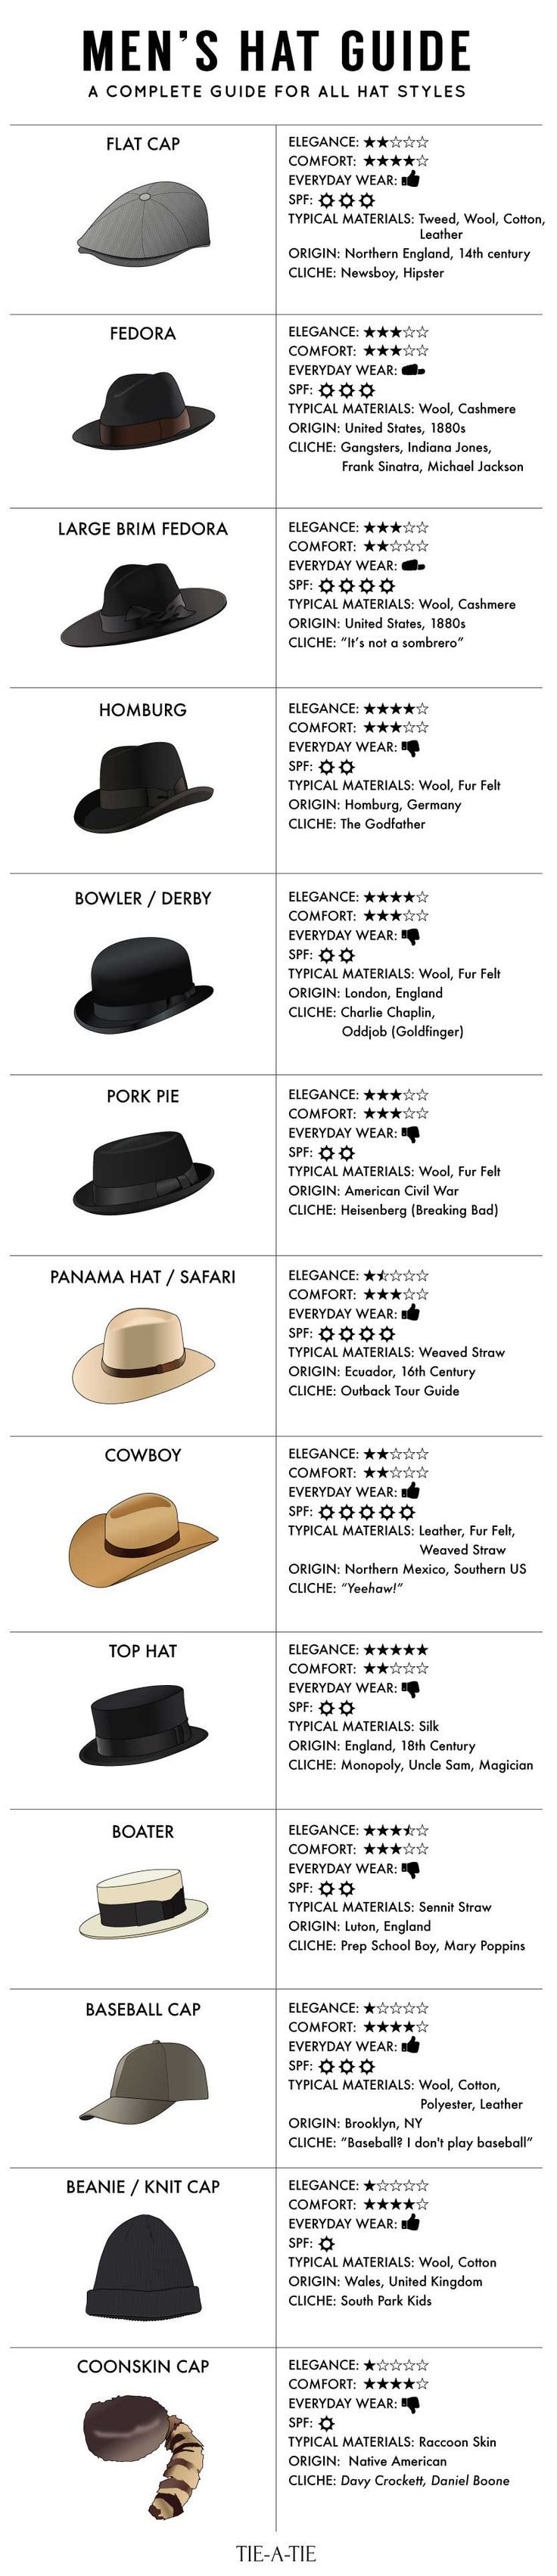 Guide To Men's Hat Styles (Top Design Style)